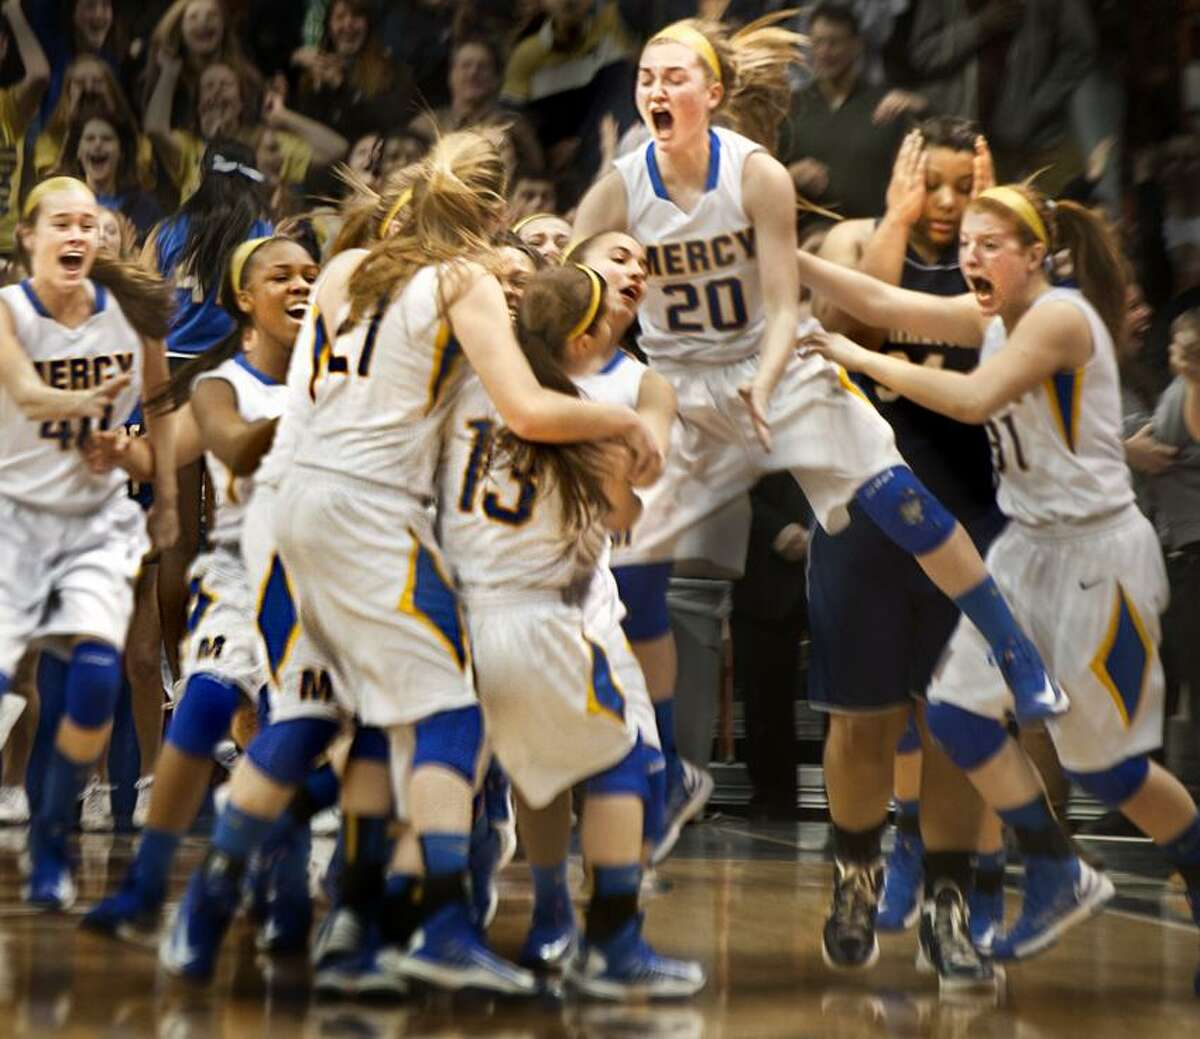 Sports-Olivia Levey walks through Mercy players celebrating the game winning shot of Maria Weselyj in the CIAC State Finals. Melanie Stengel/Register